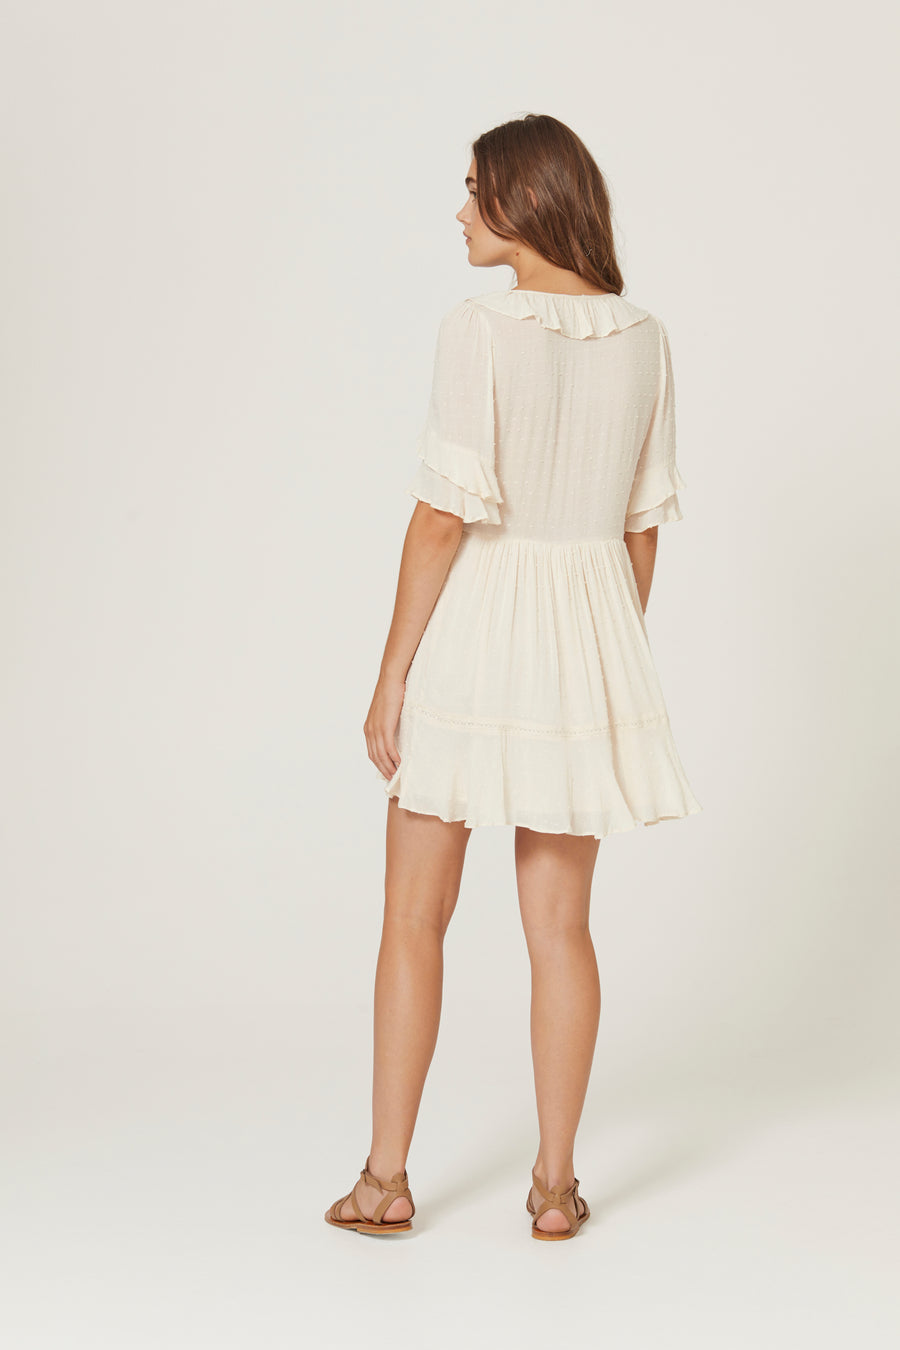 Frida Mini Dress Off White